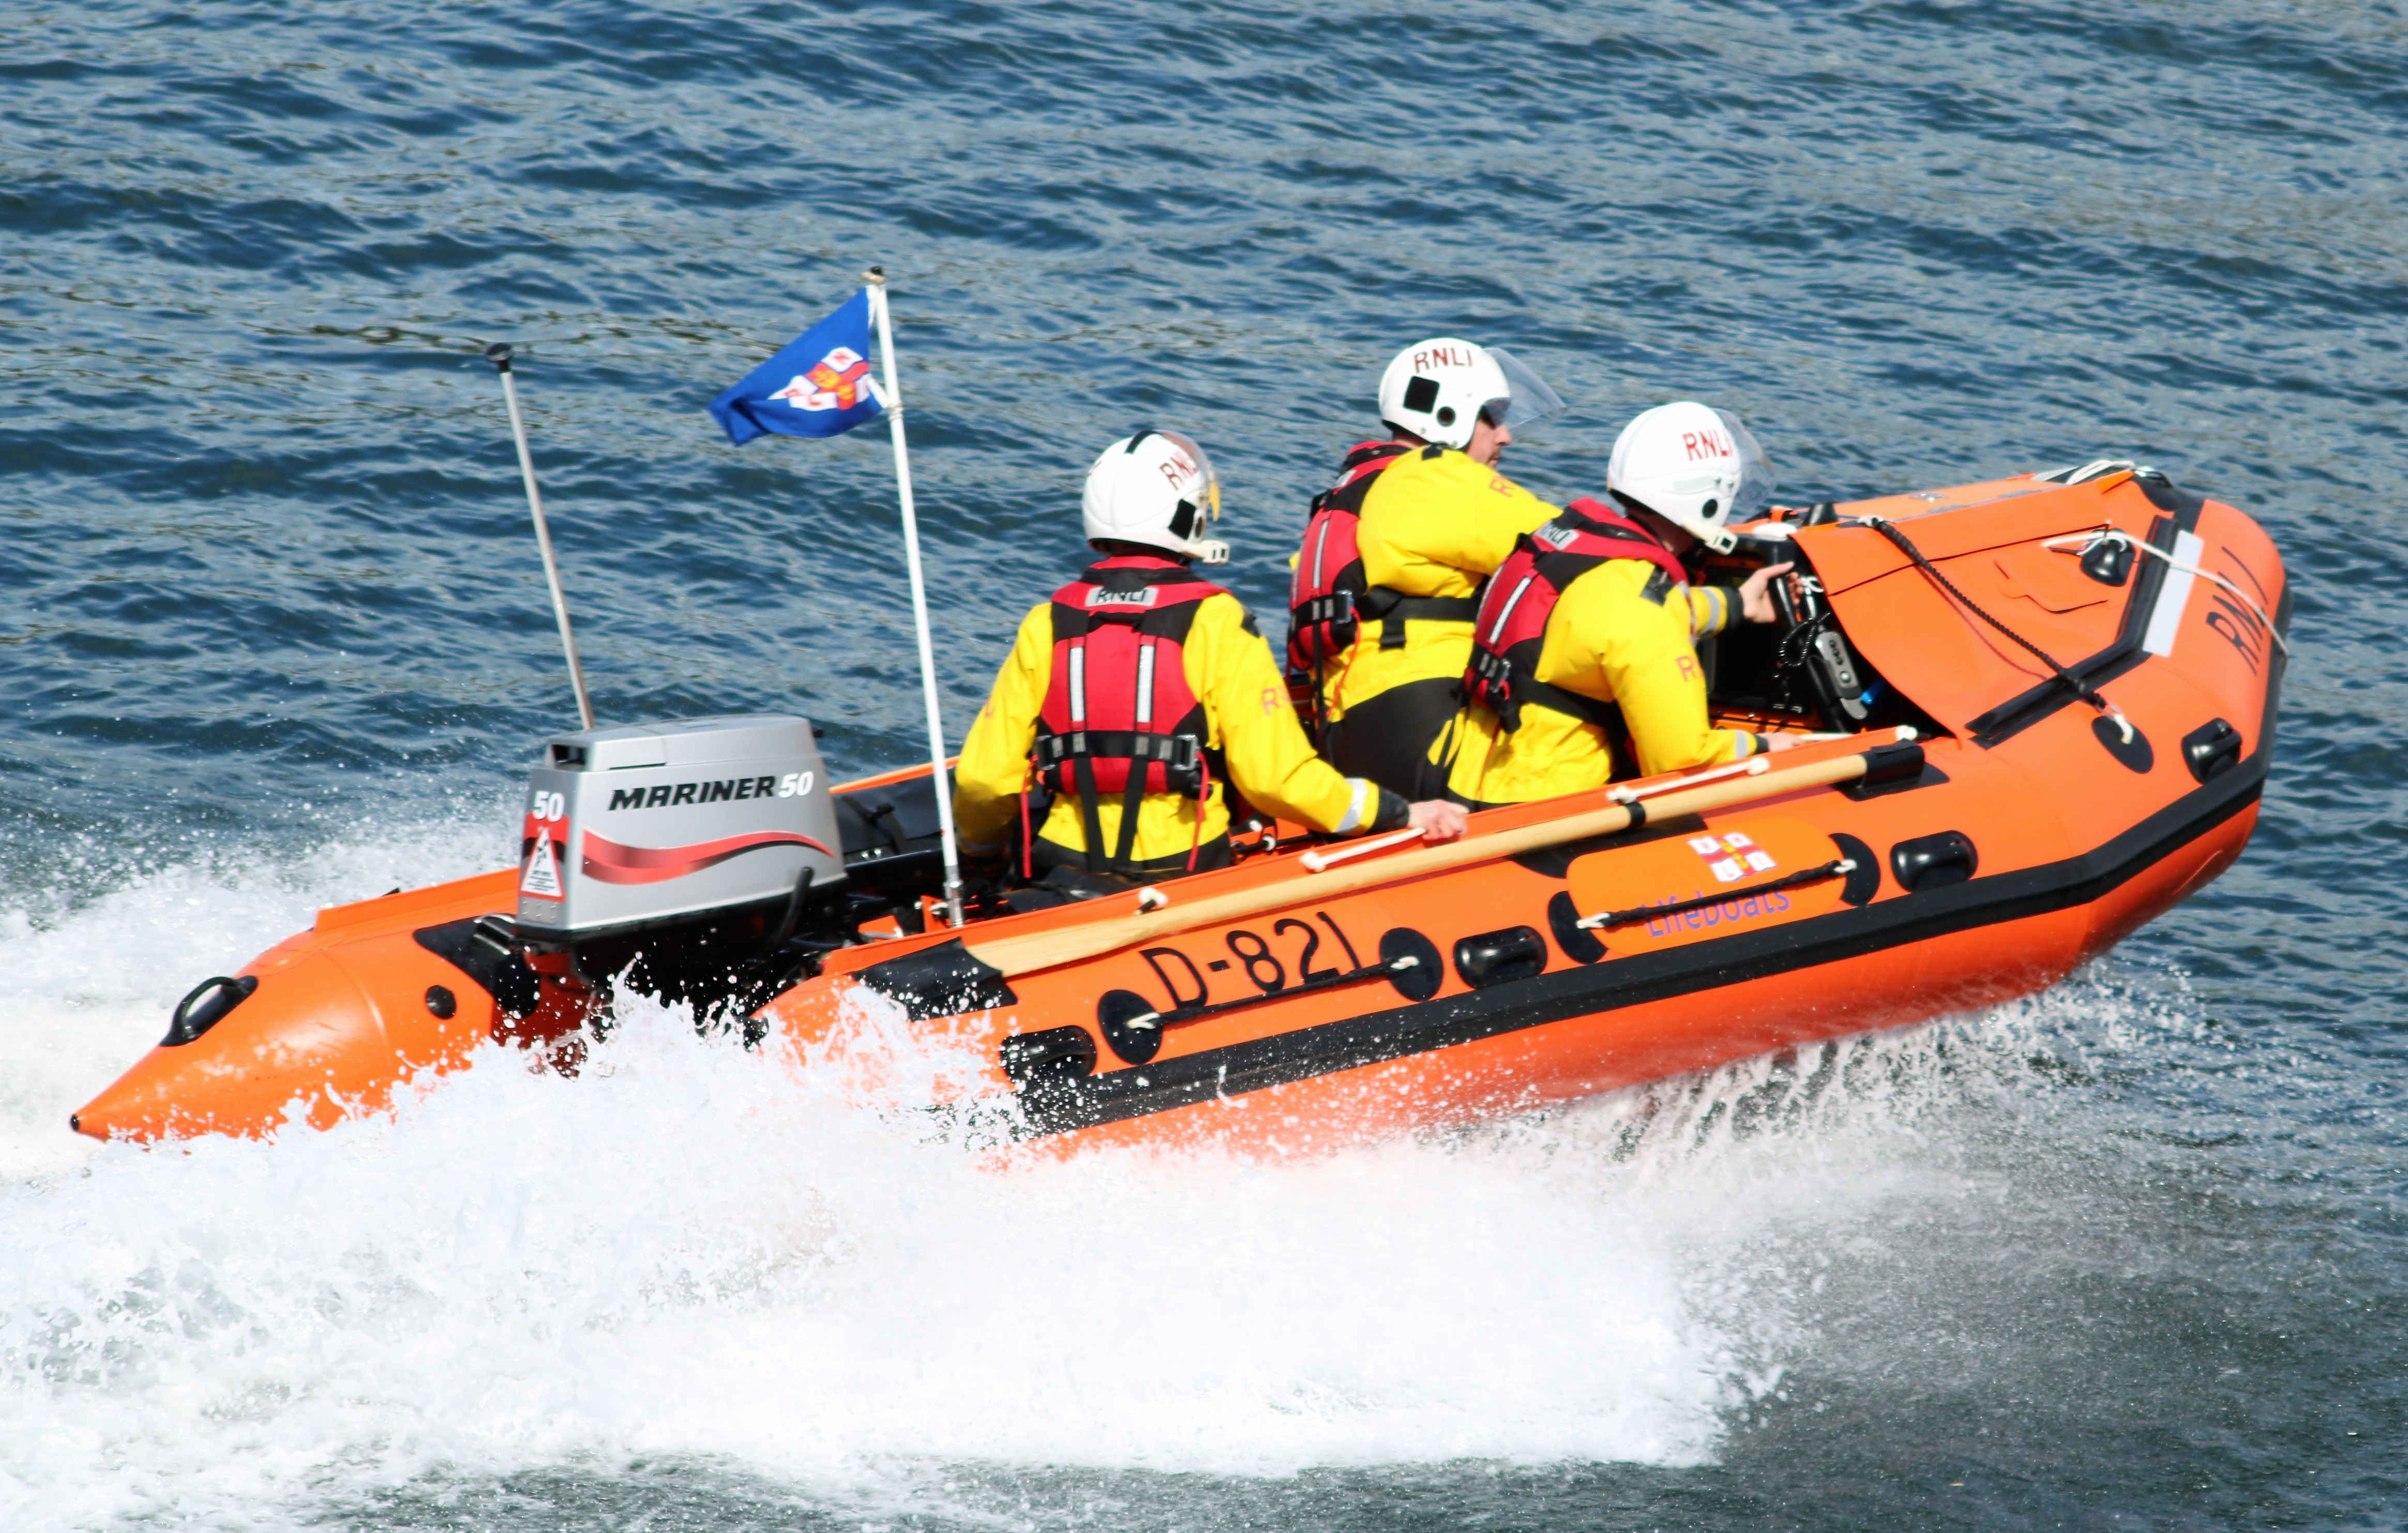 Troon D class inshore lifeboat 'Sheena' with three crew on board making